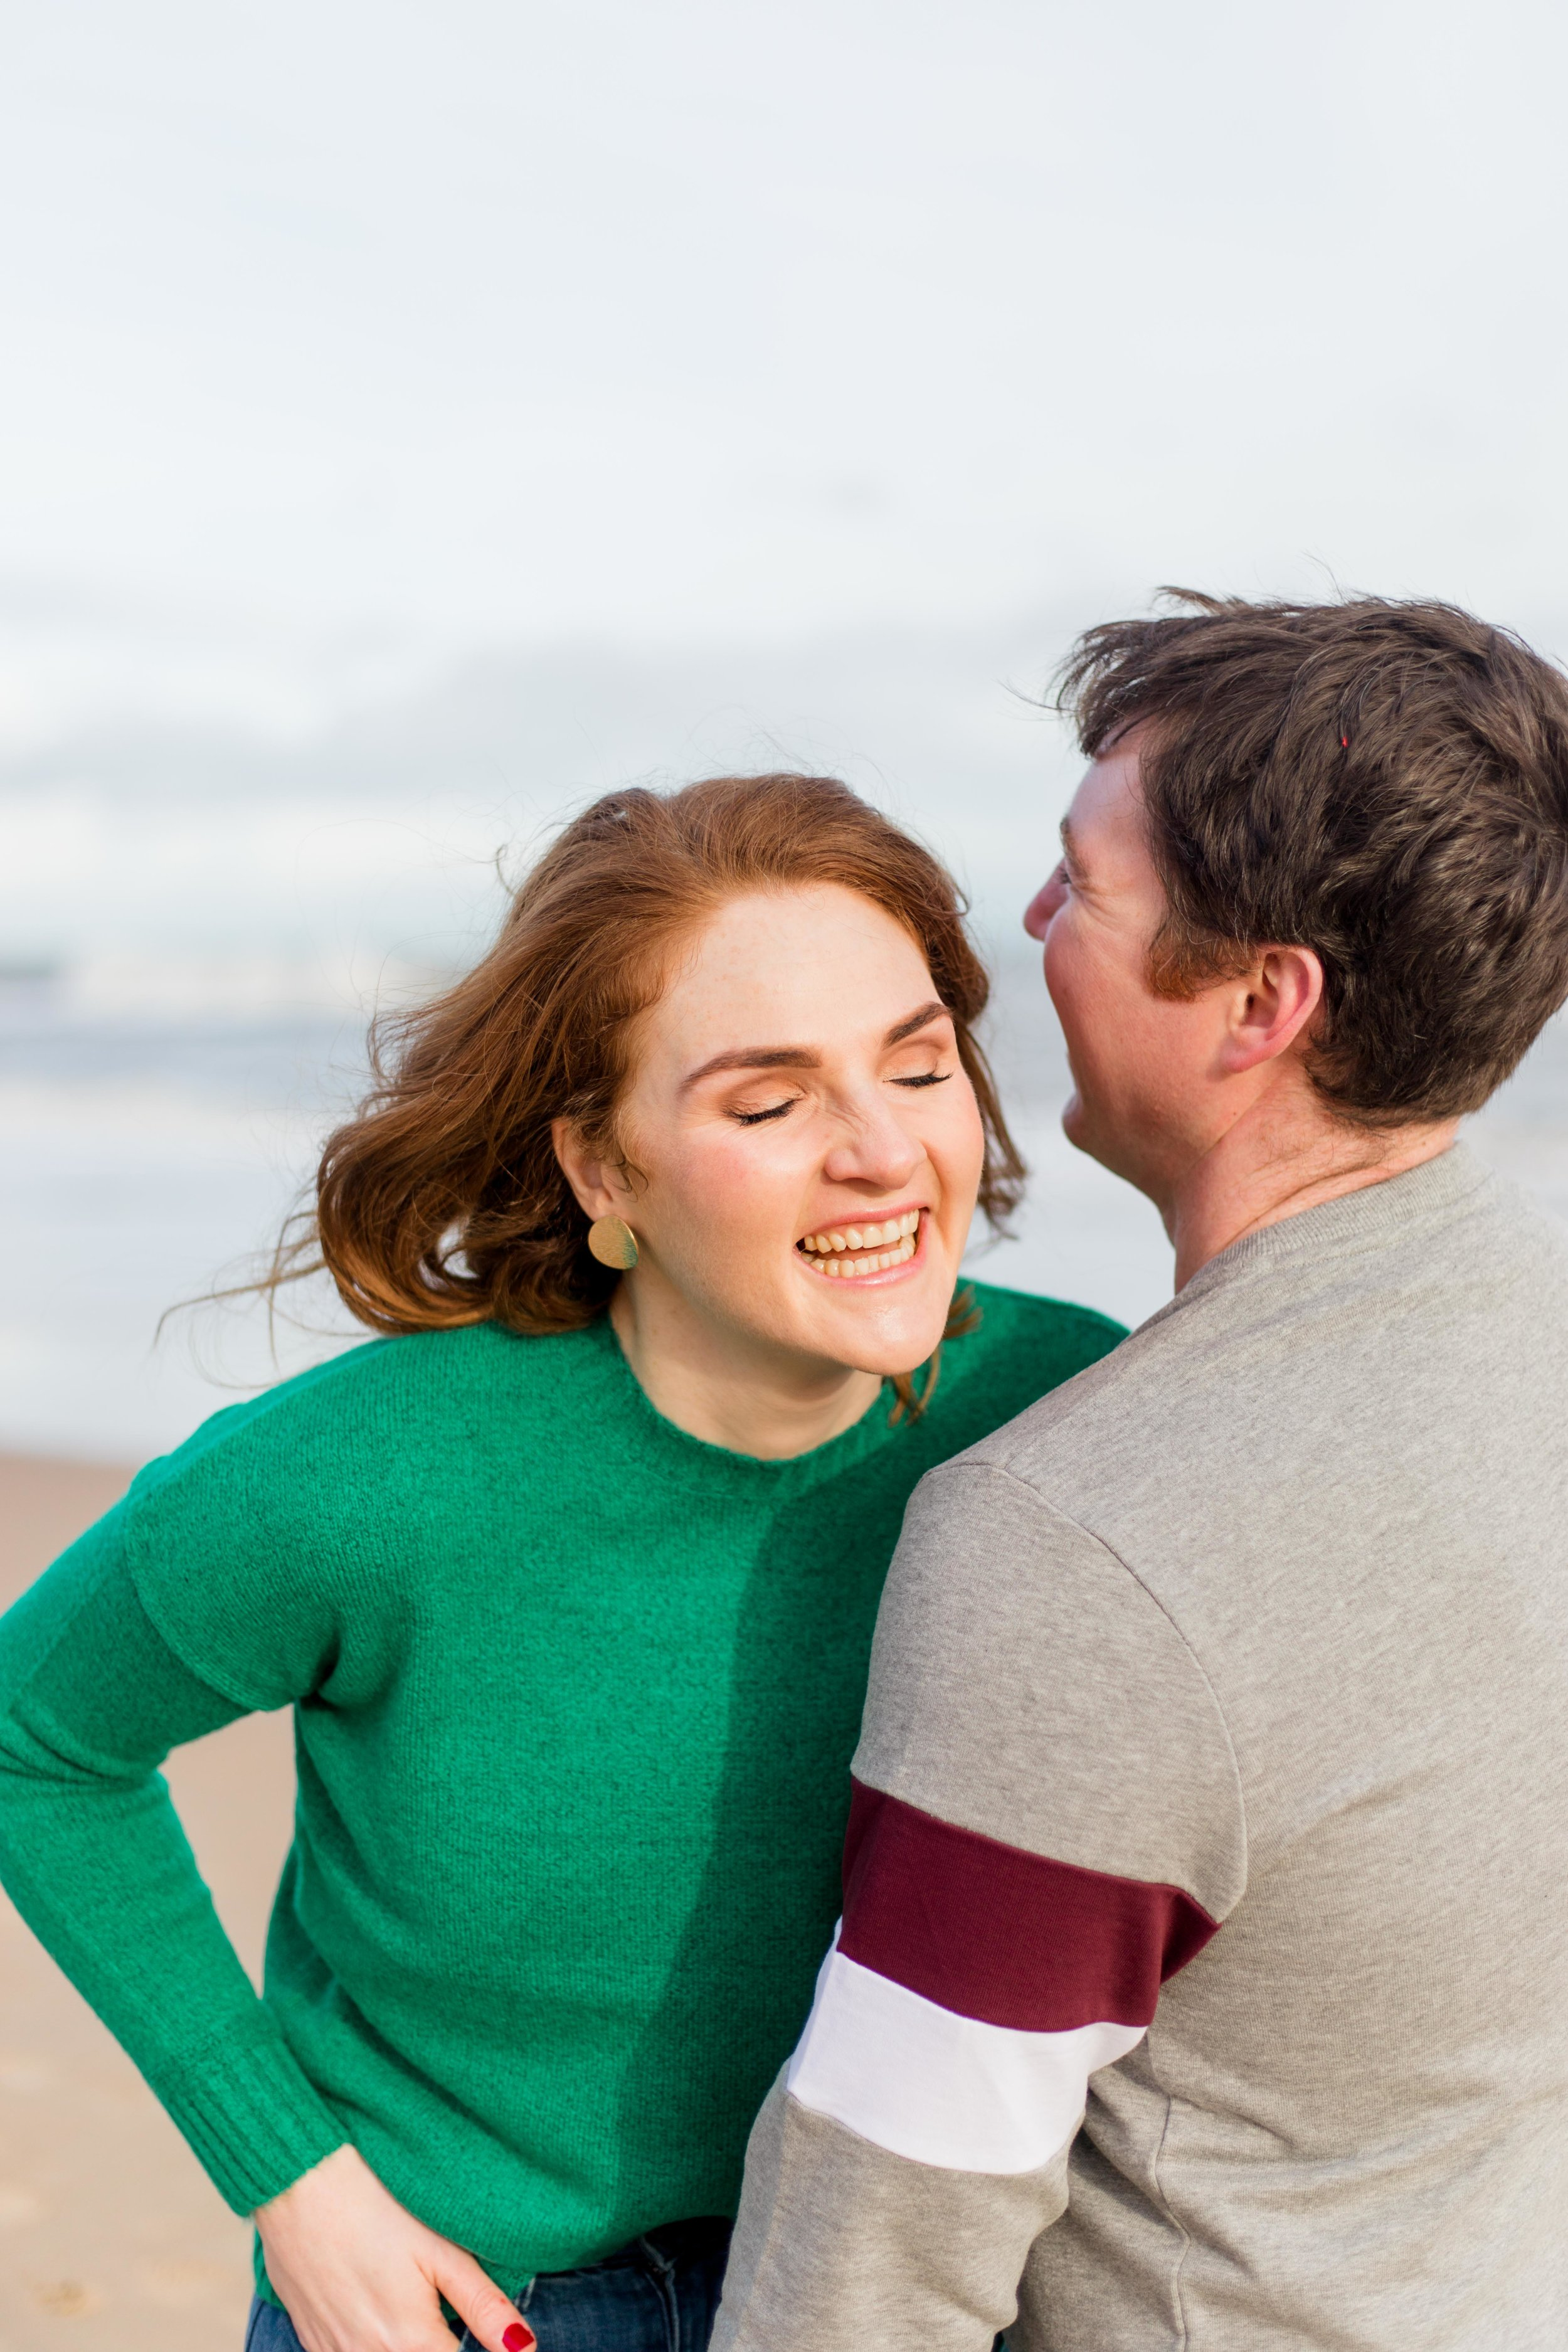 woman wearing a green jumper is being tickled by a man in grey jumper on a sandy beach posing for an engagement photoshoot at brittas bay in ireland